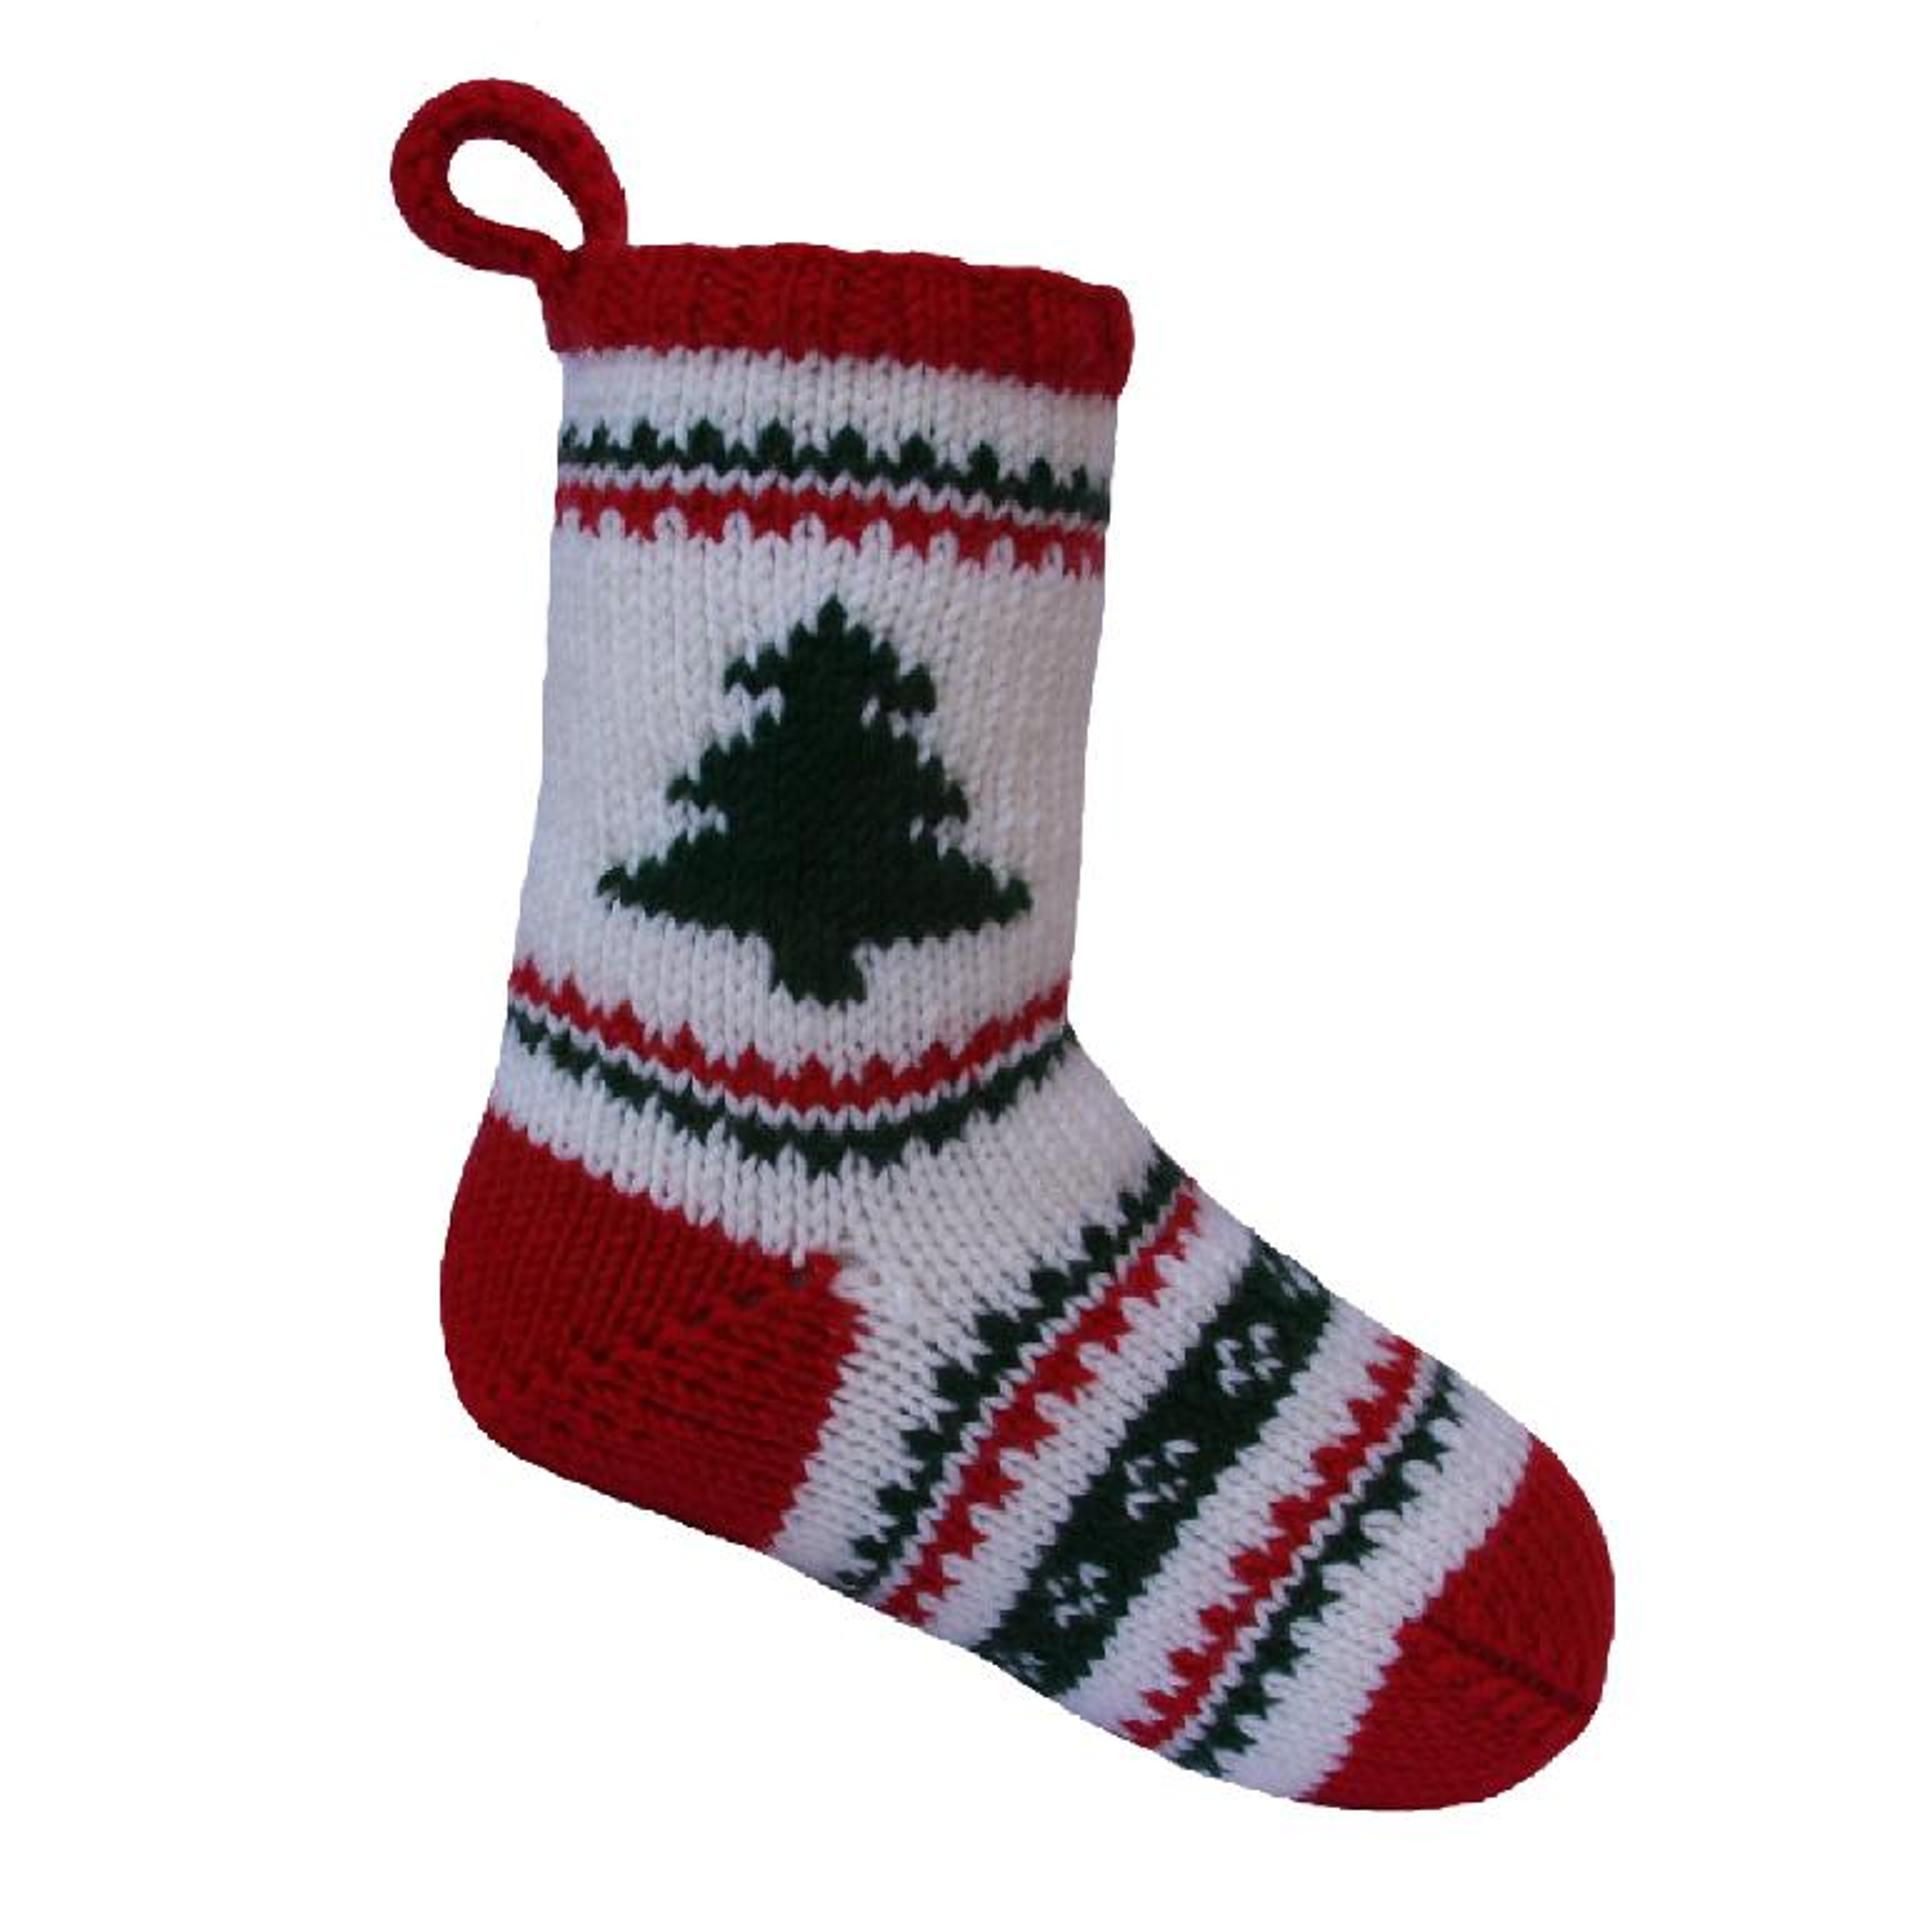 Free christmas stocking craftsy knitting patterns christmas free knitting pattern for christmas stocking with tree sarah gasson of knitables created this stocking that is approximately wide by long bankloansurffo Gallery